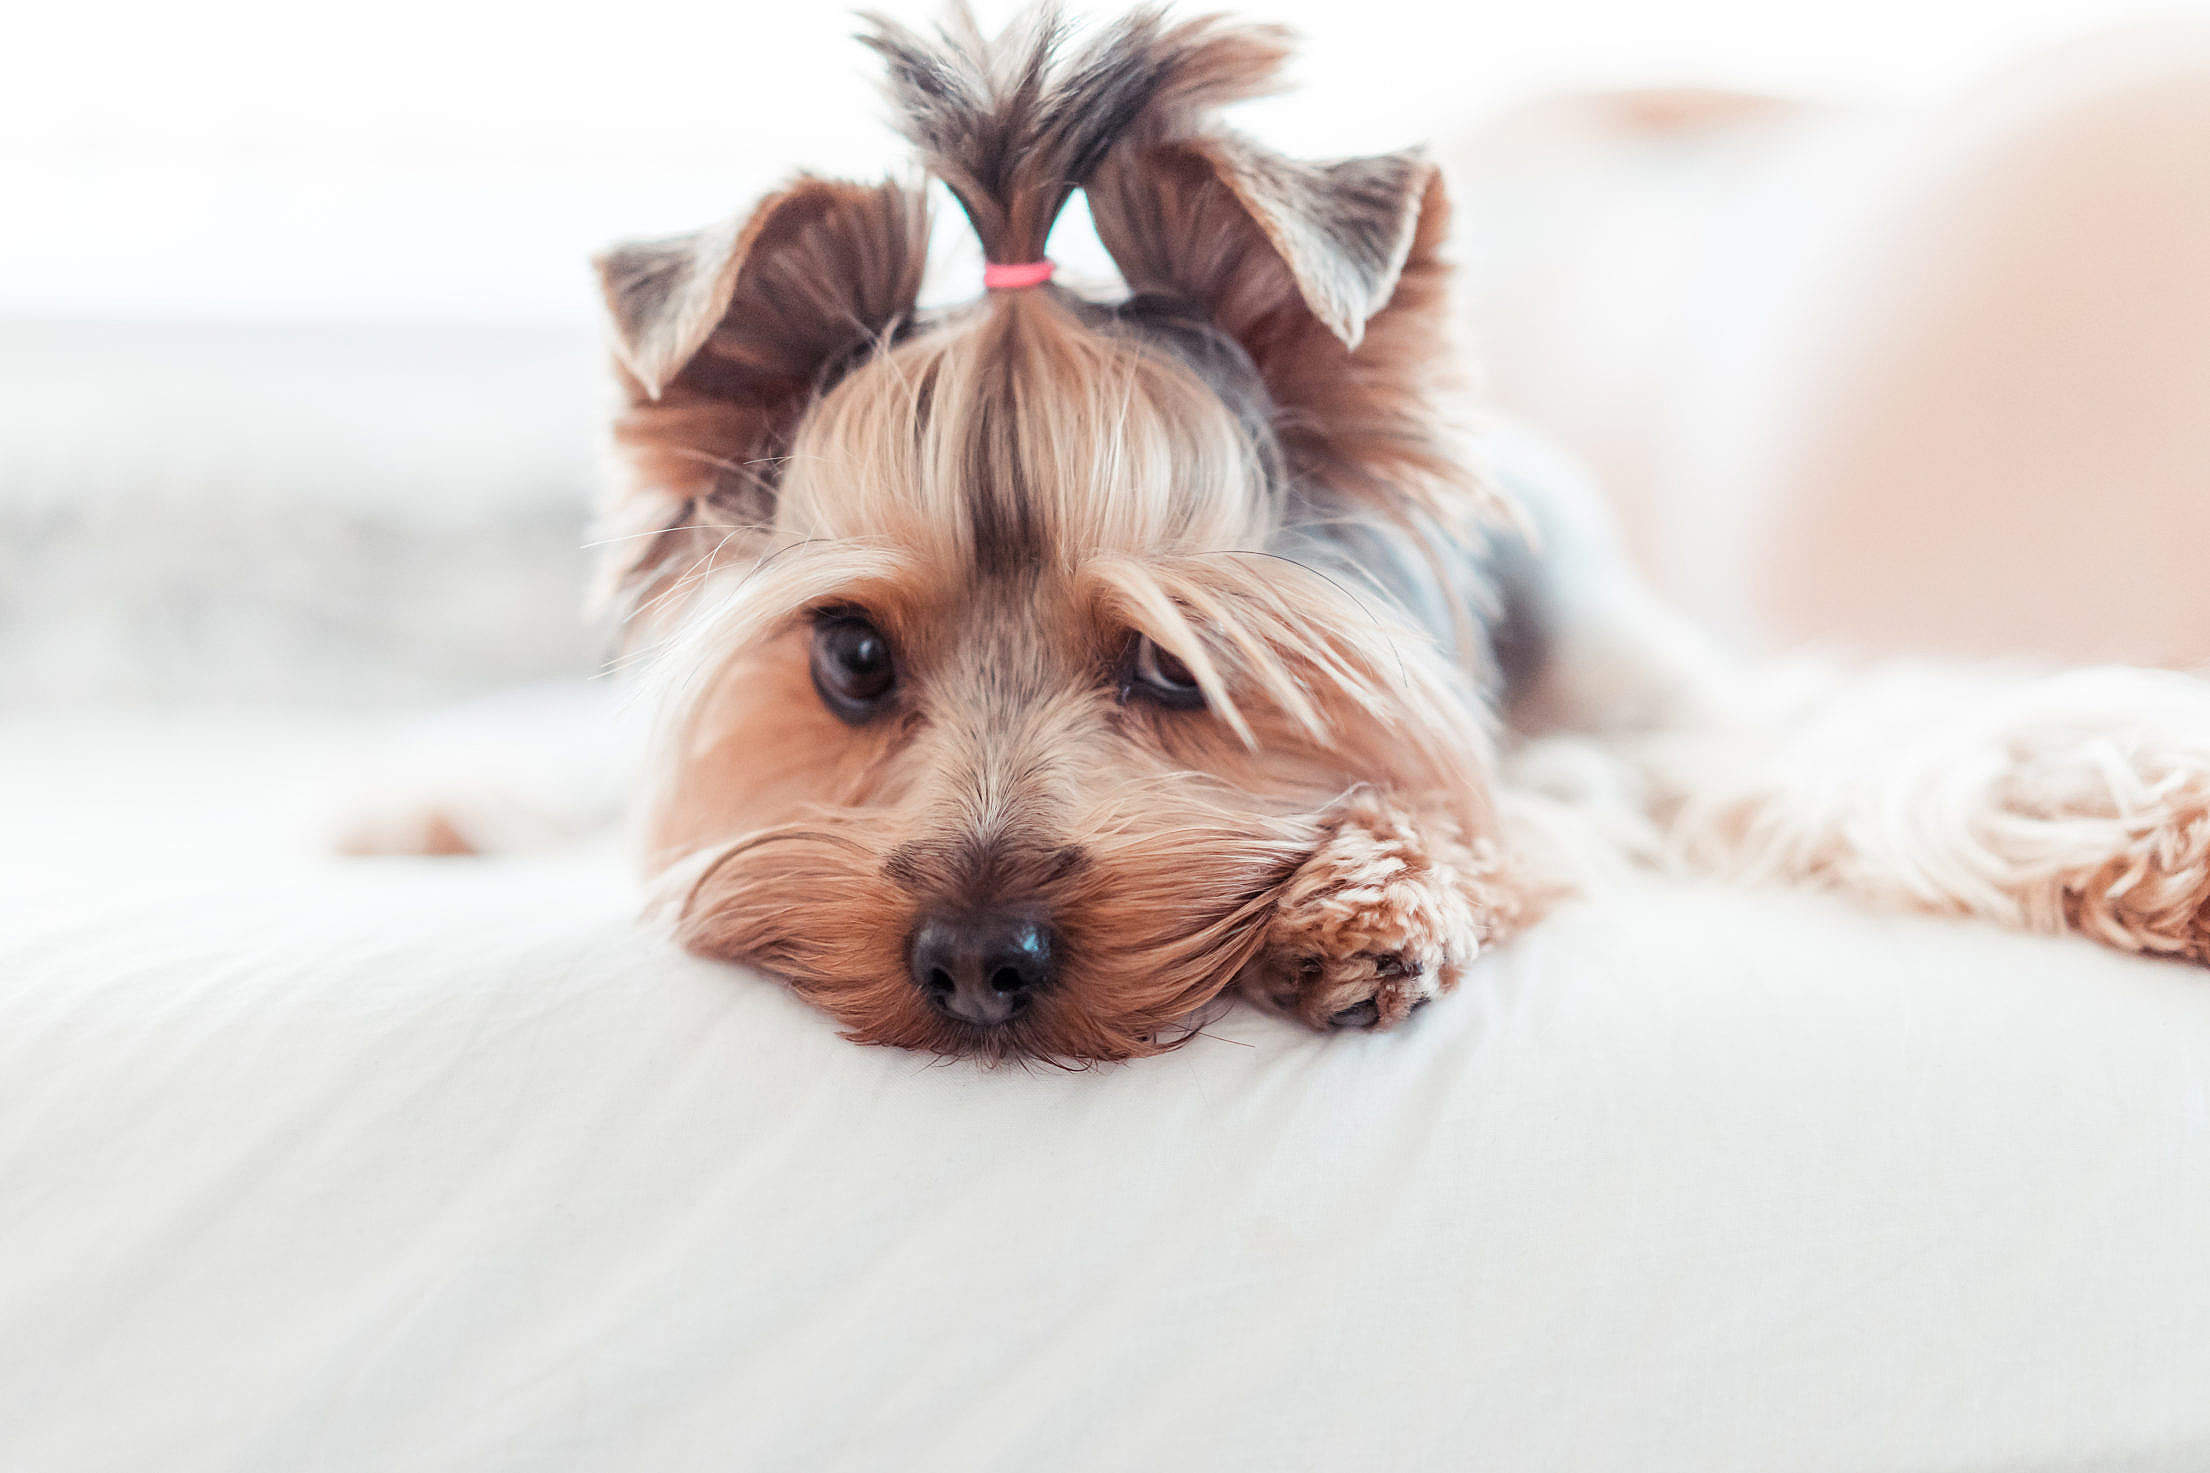 Adorable Yorkshire Terrier Puppy Innocent Look in Bed Free Stock Photo